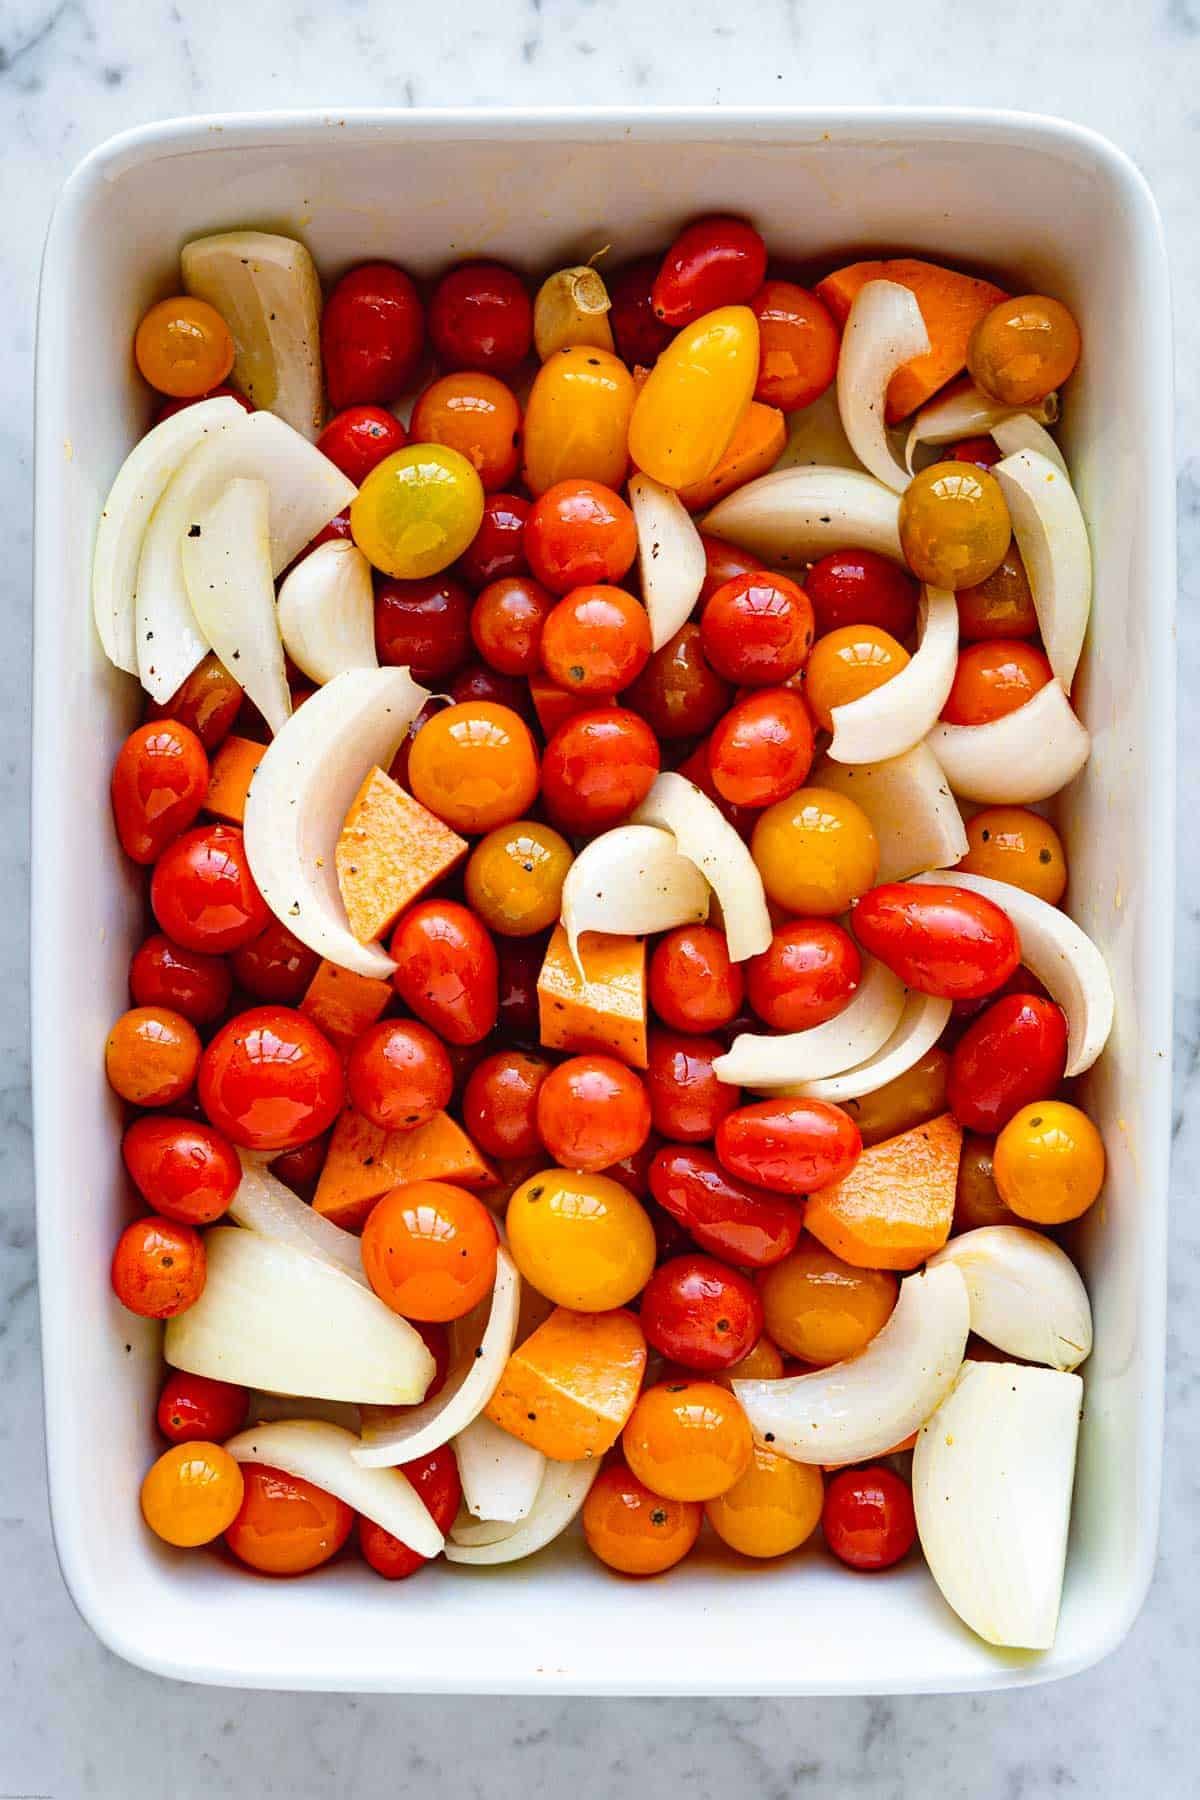 Cherry tomatoes, yellow onion wedges, chopped sweet potato, and garlic cloves tossed with olive oil in a baking dish.